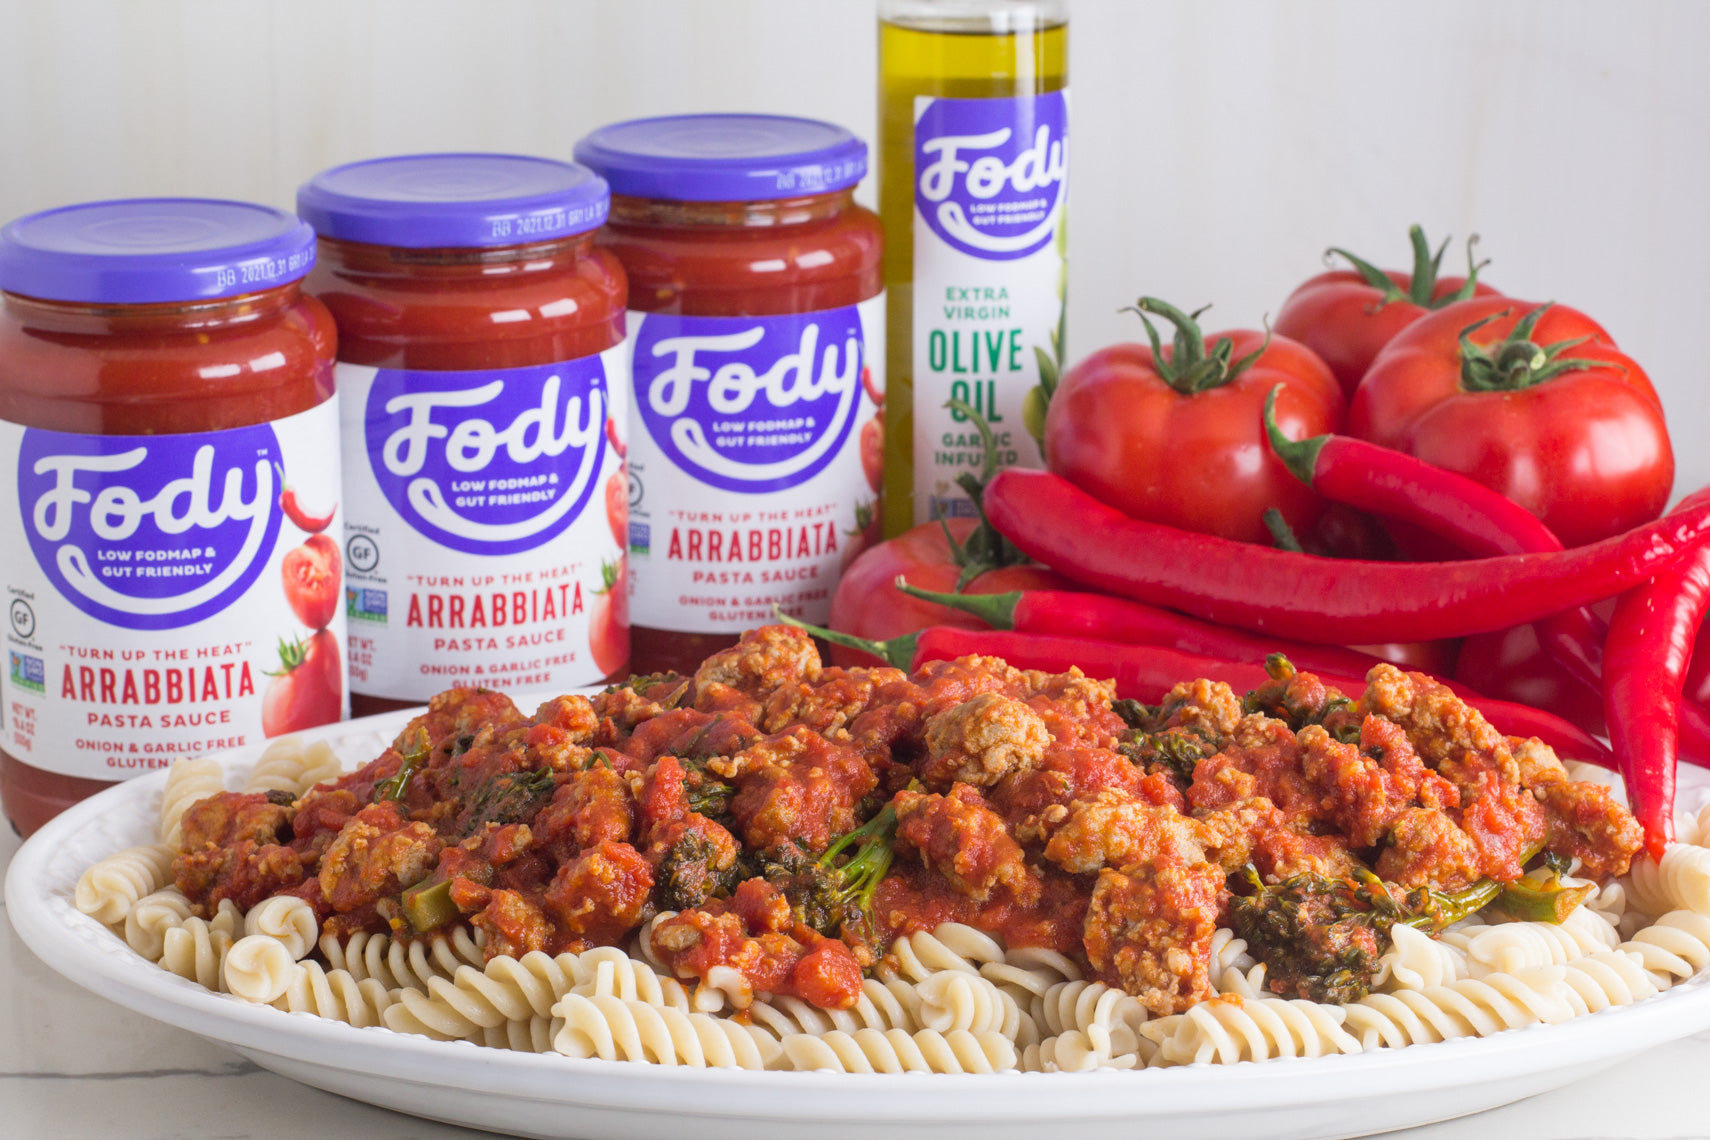 Low FODMAP <br><b><big>Pasta Sauce Variety Pack </big></b><br><small>No Onion, No Garlic & Gluten-Free!</small>